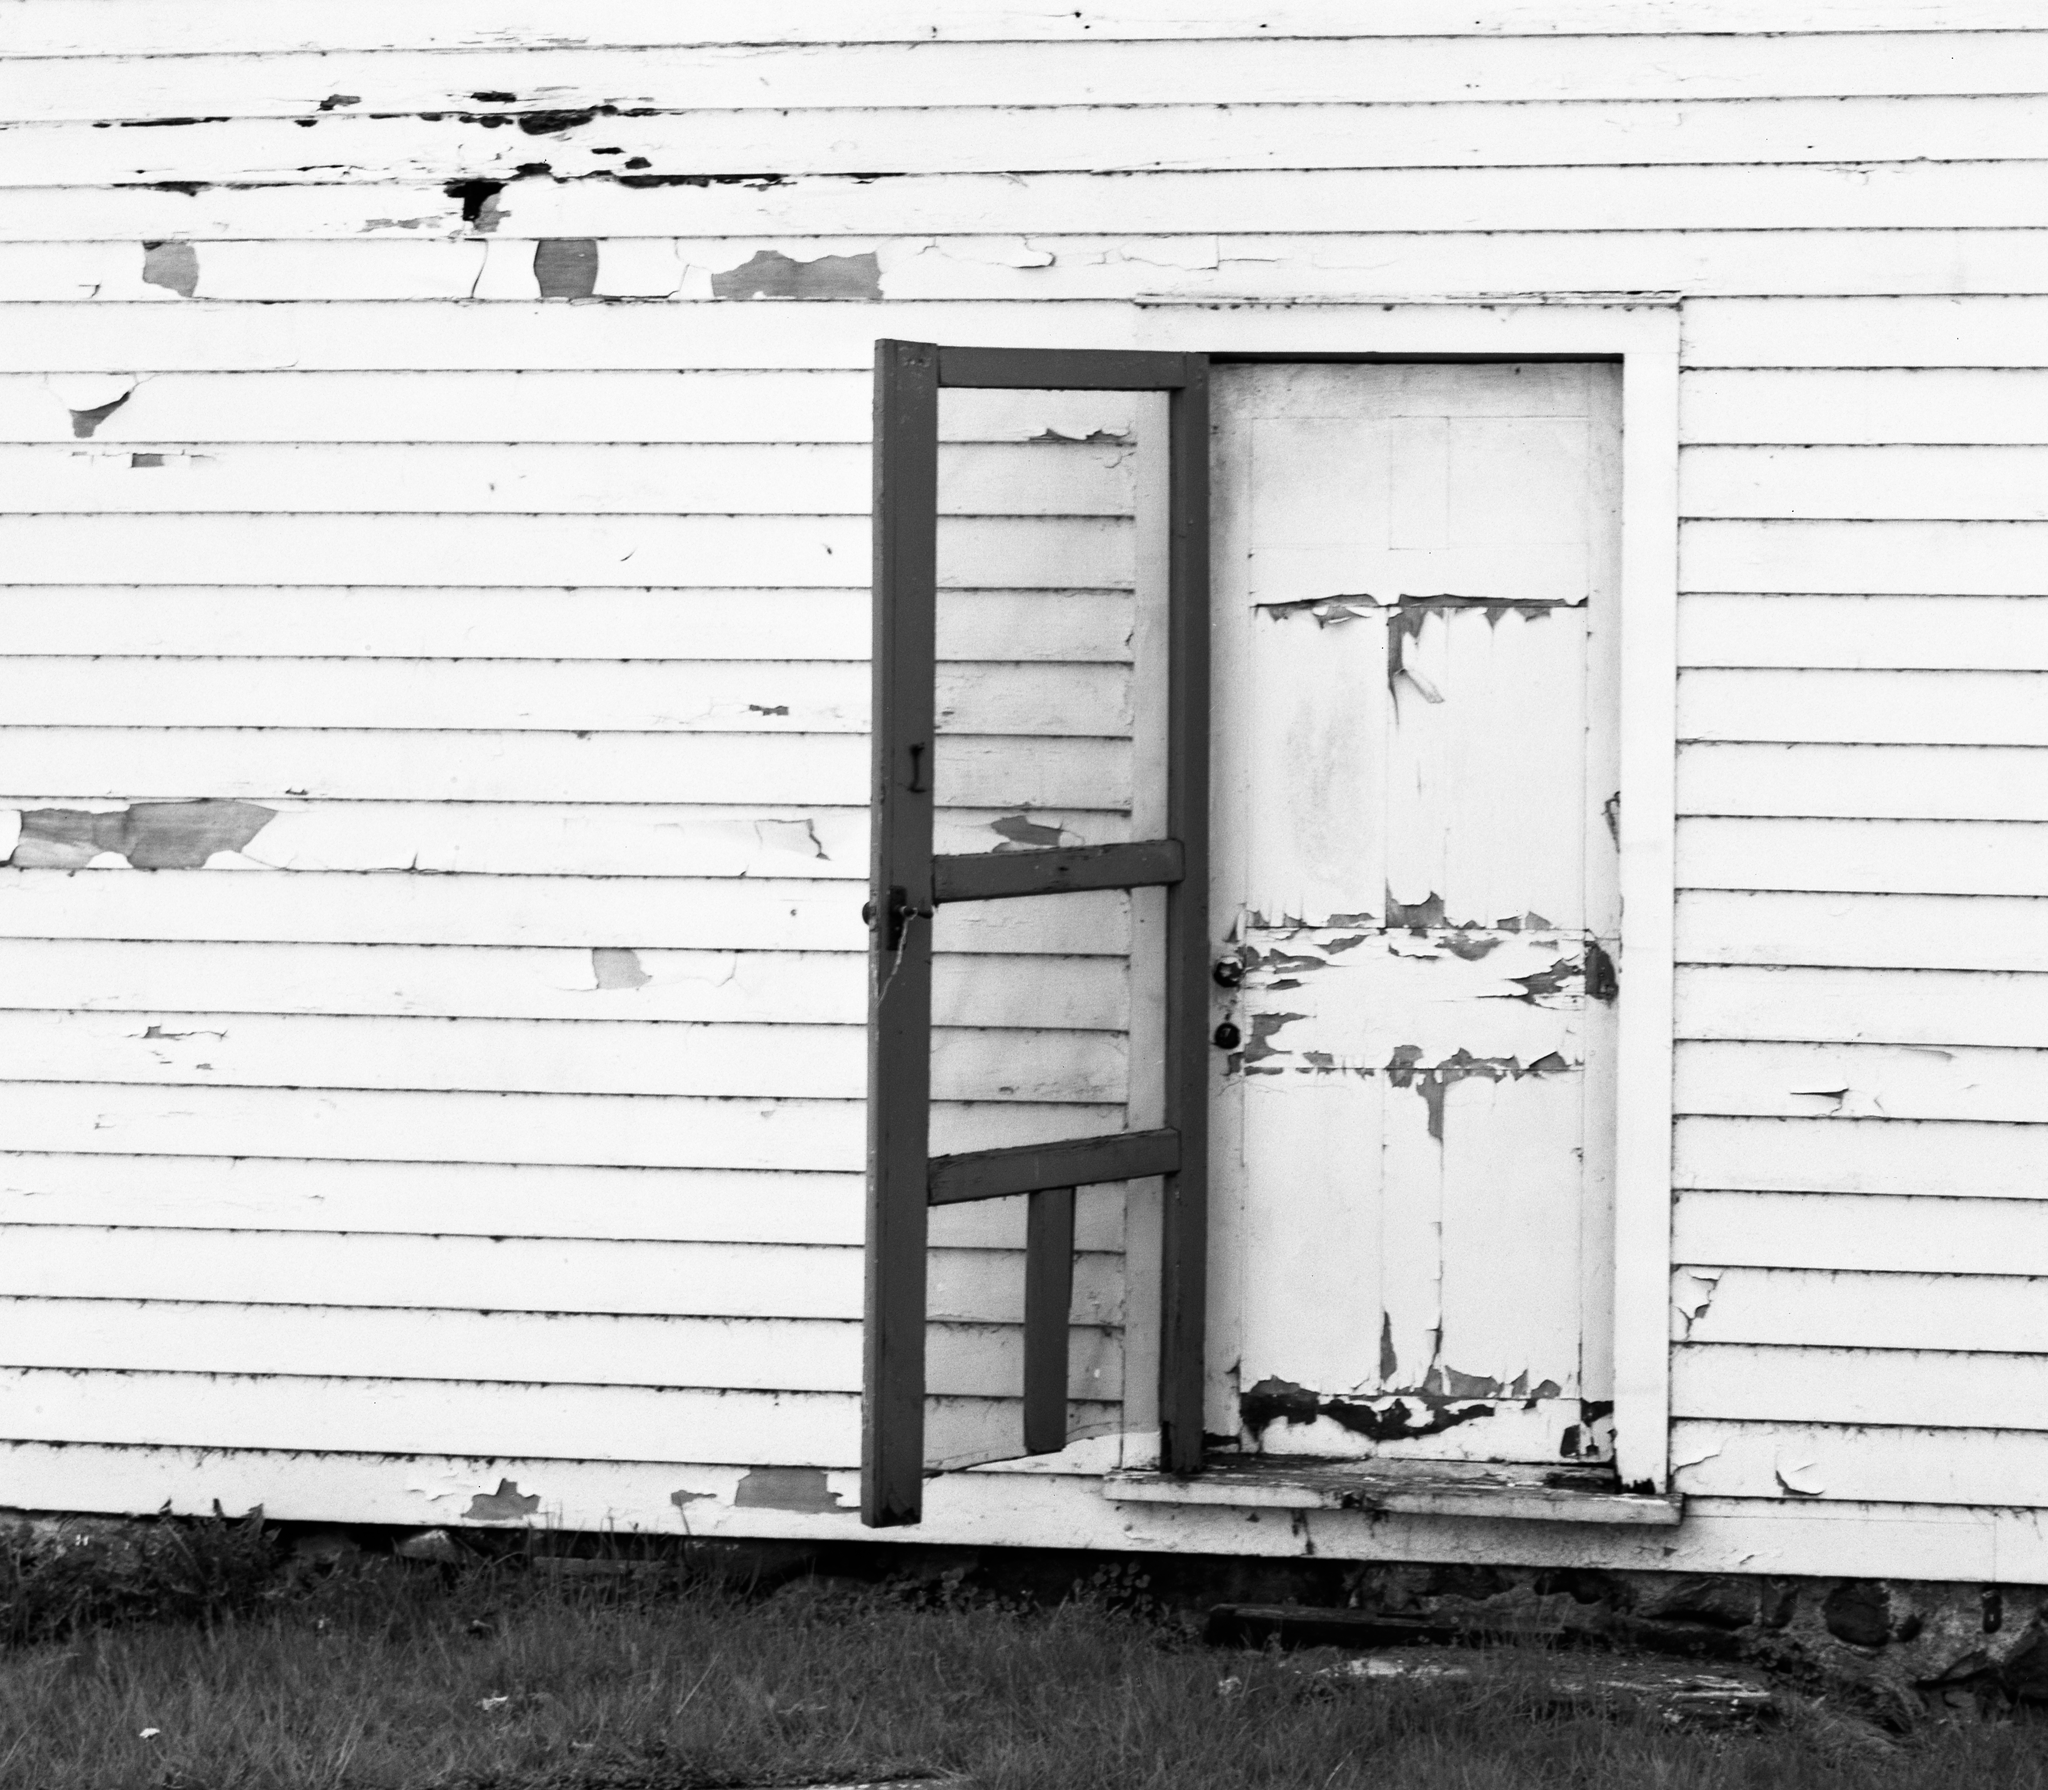 4x5_for_365_project_0134_Millbrook_peeling_paint.png